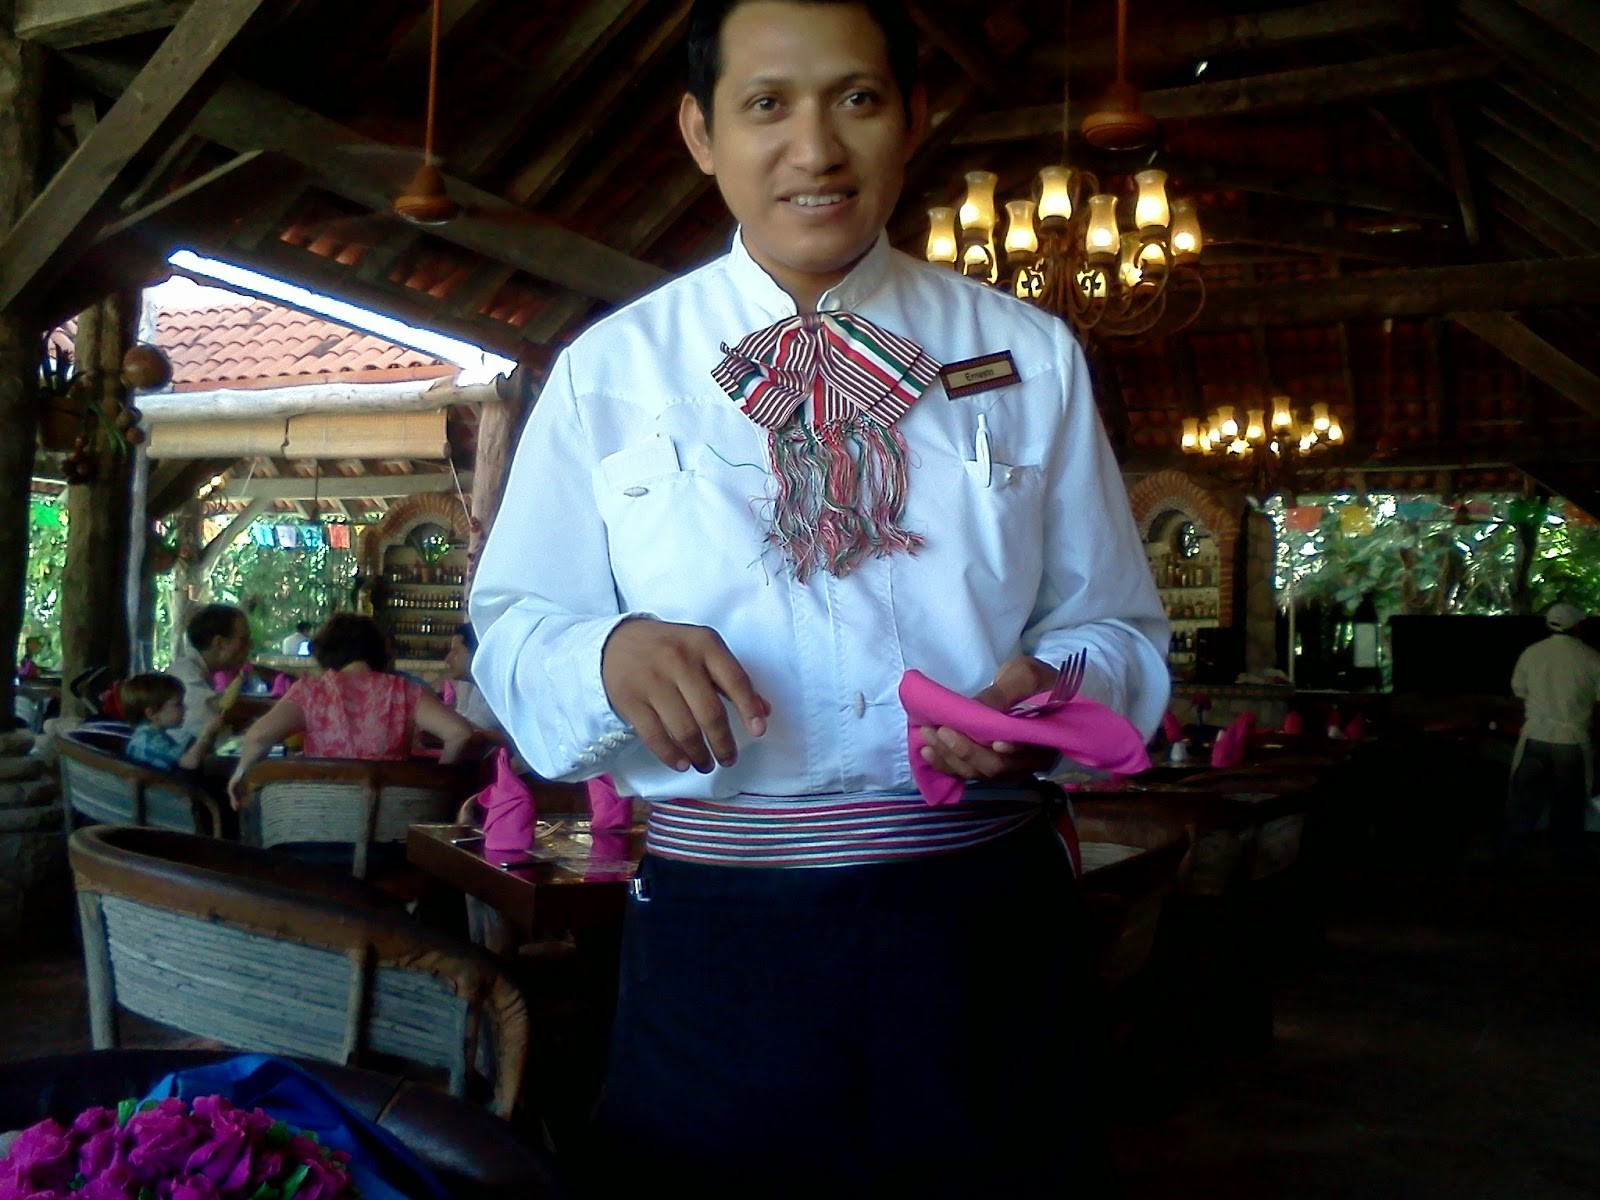 waiter_at_restaurant